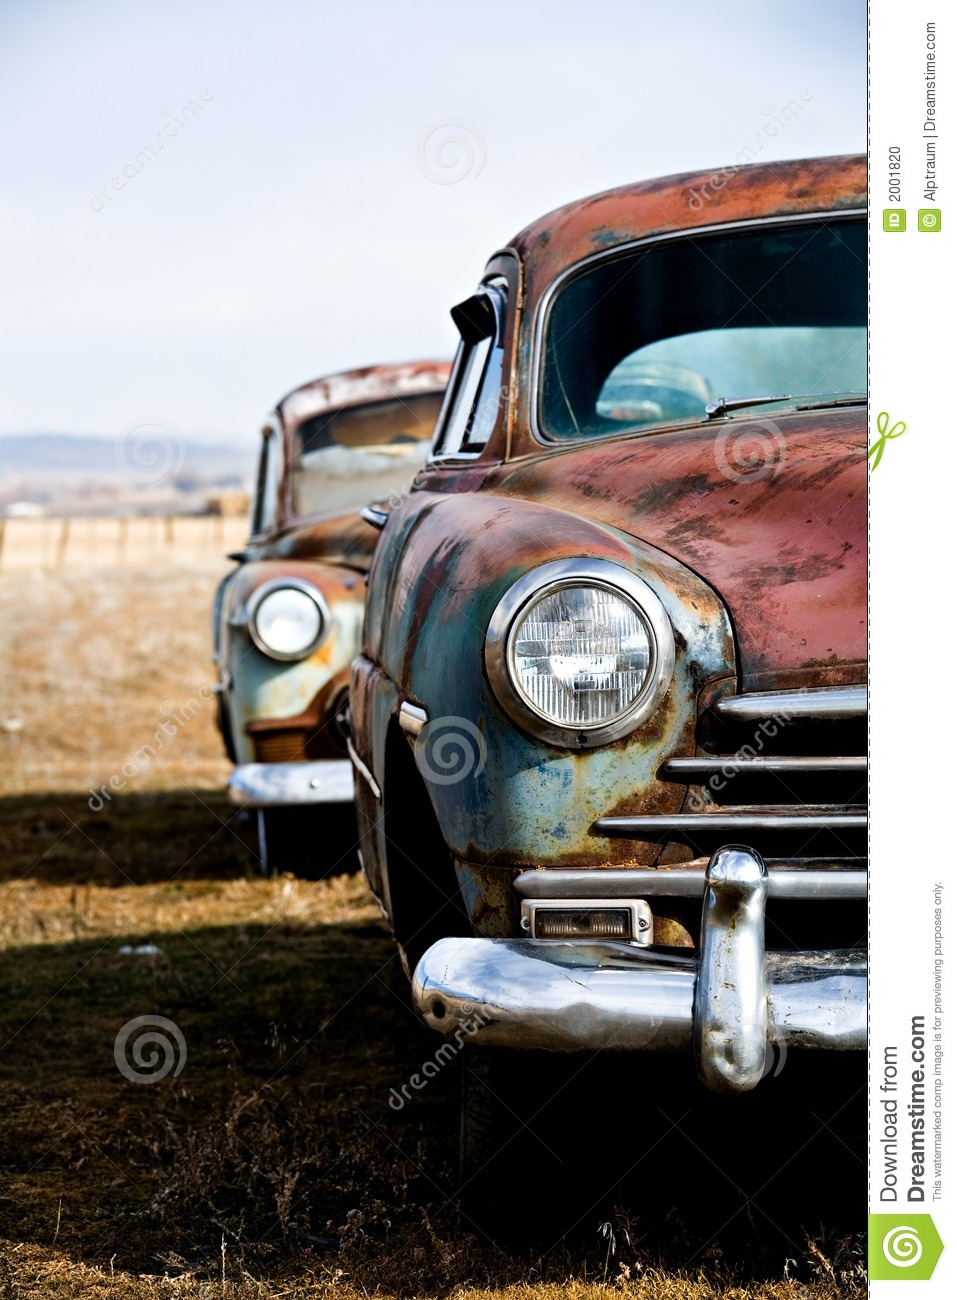 Free Classic Car Wallpaper Vintage Cars Vertical Version Stock Photo Image 2001820